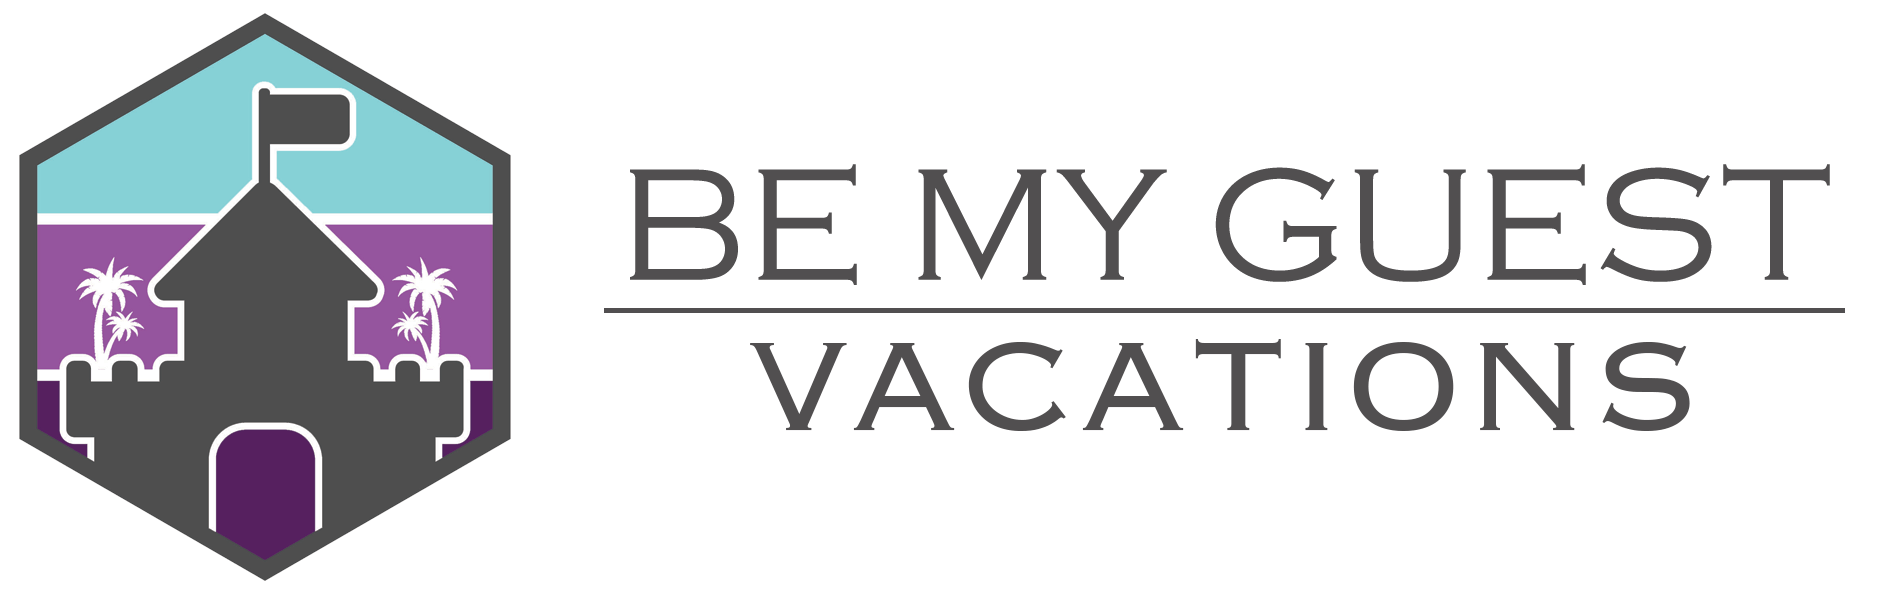 Be My Guest Vacations